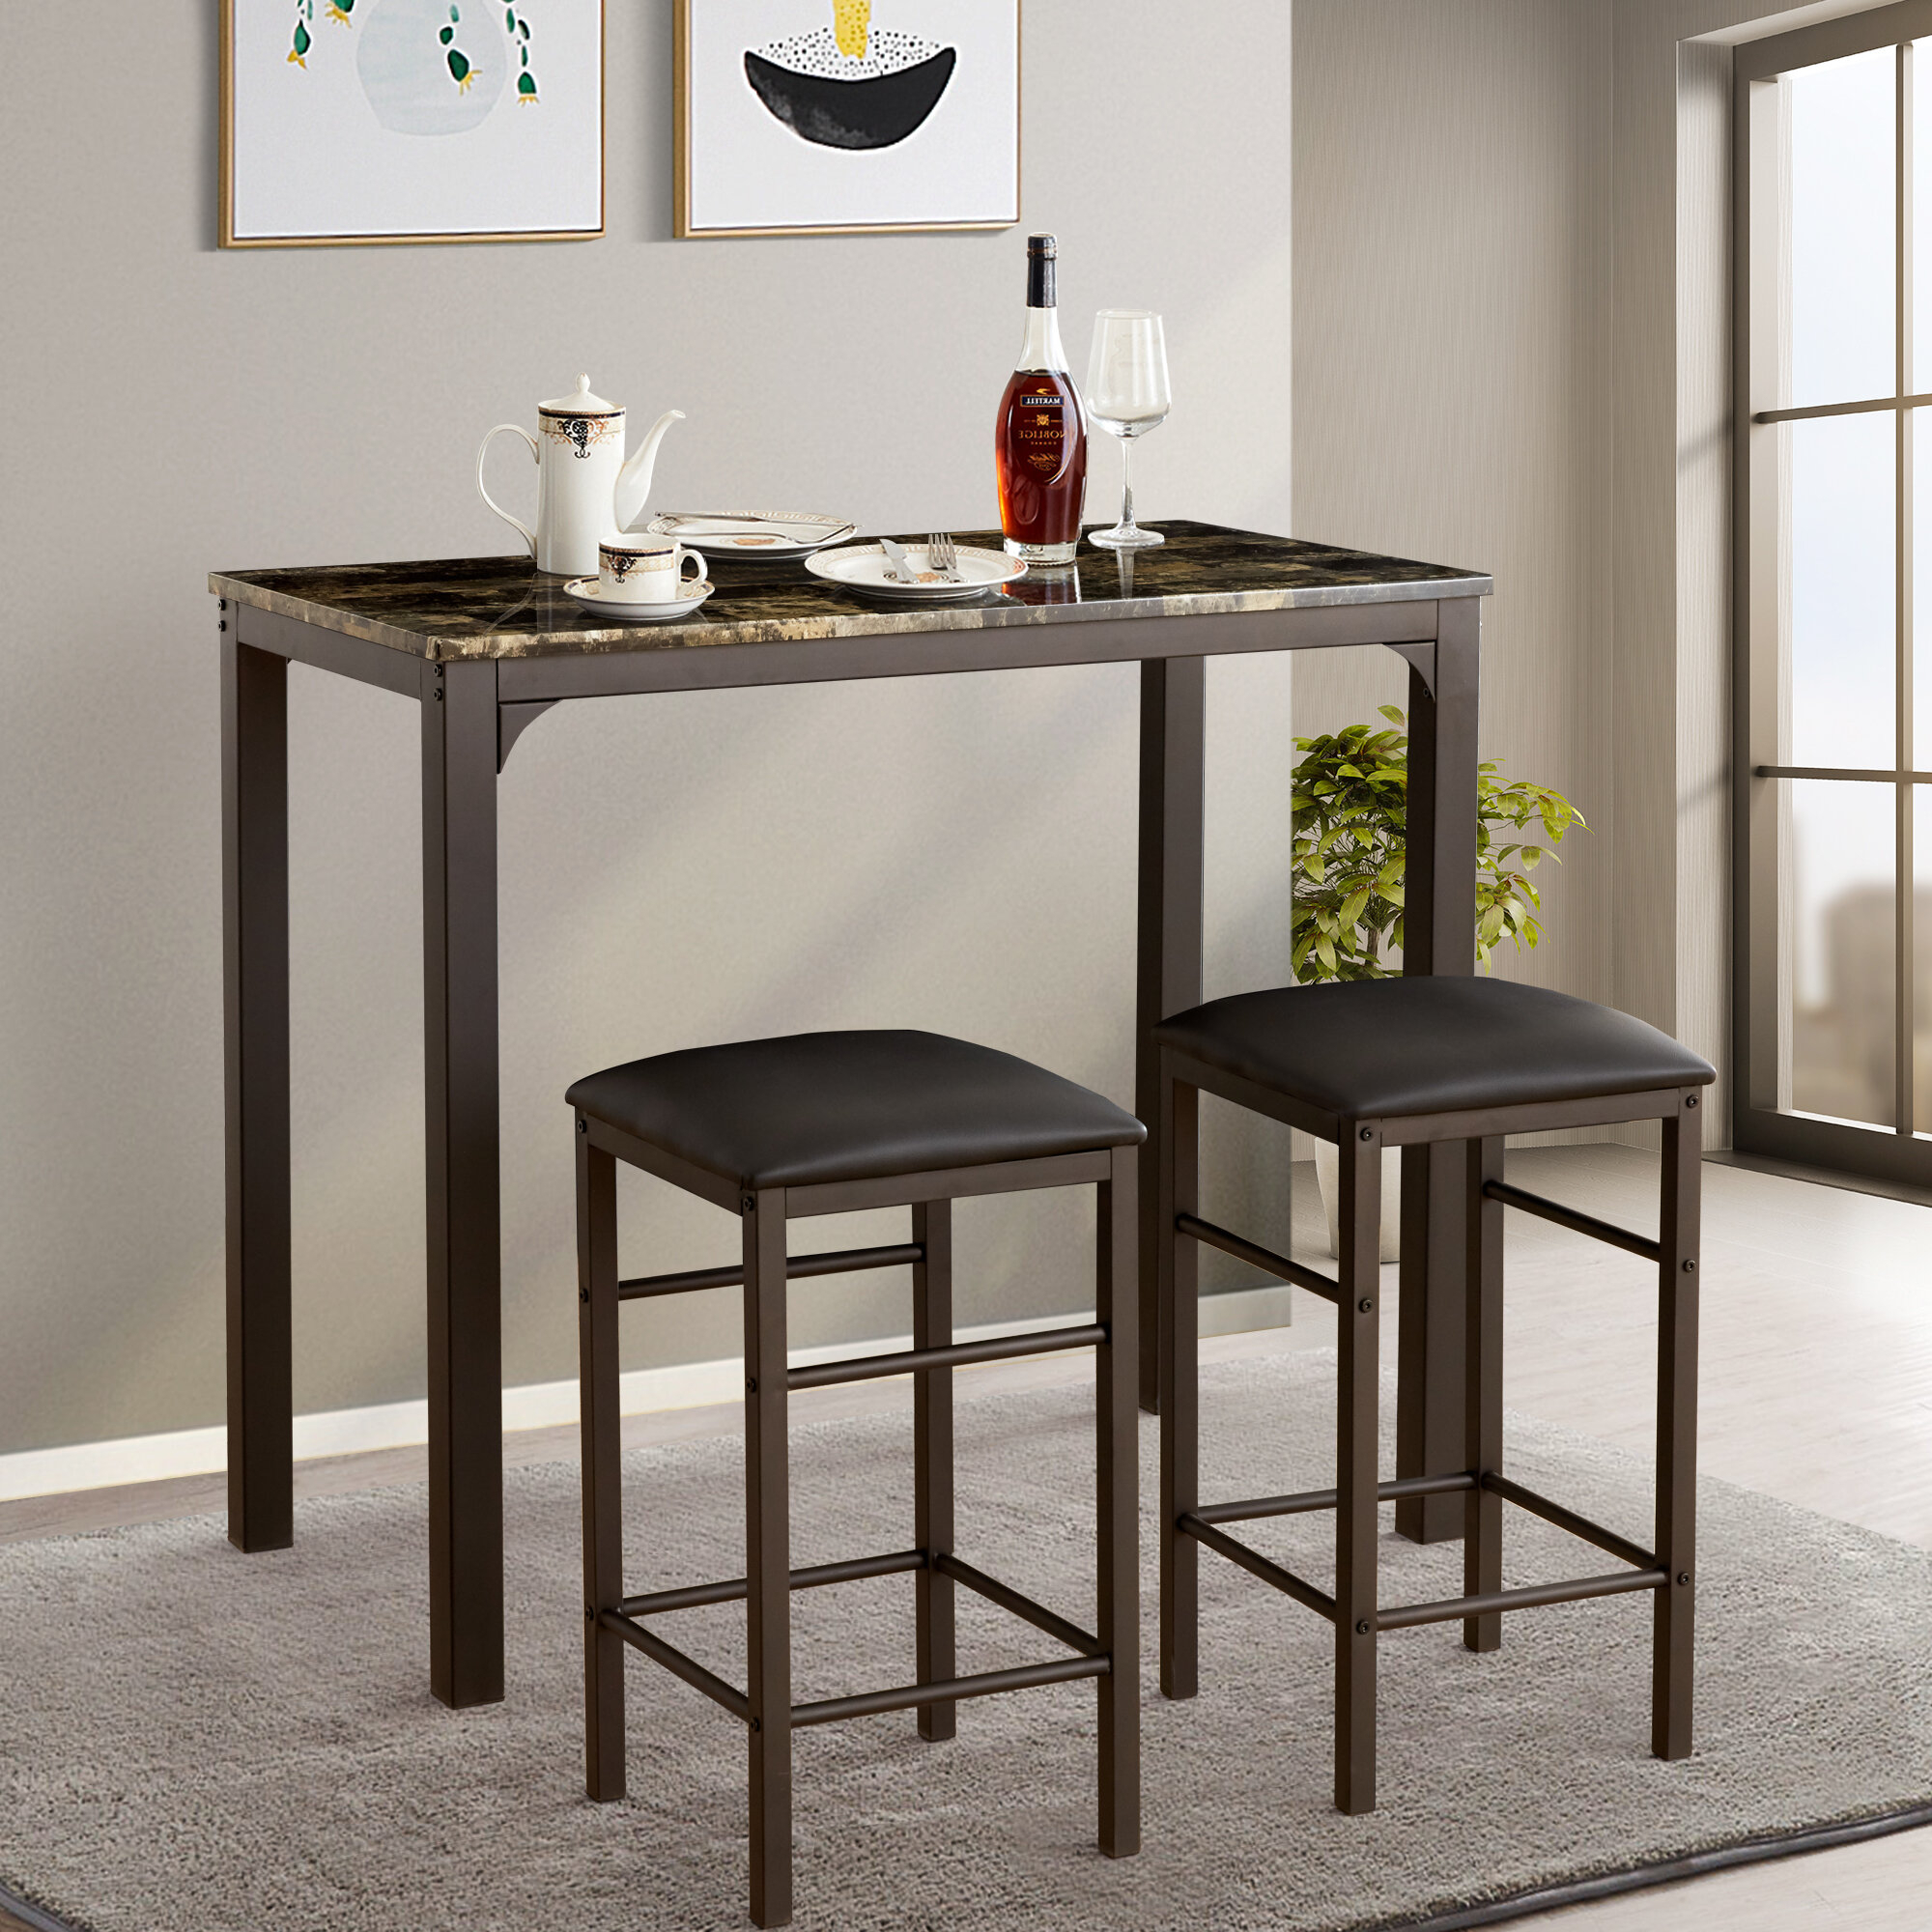 Tappahannock 3 Piece Counter Height Dining Set Regarding Most Up To Date Mizpah 3 Piece Counter Height Dining Sets (View 2 of 20)